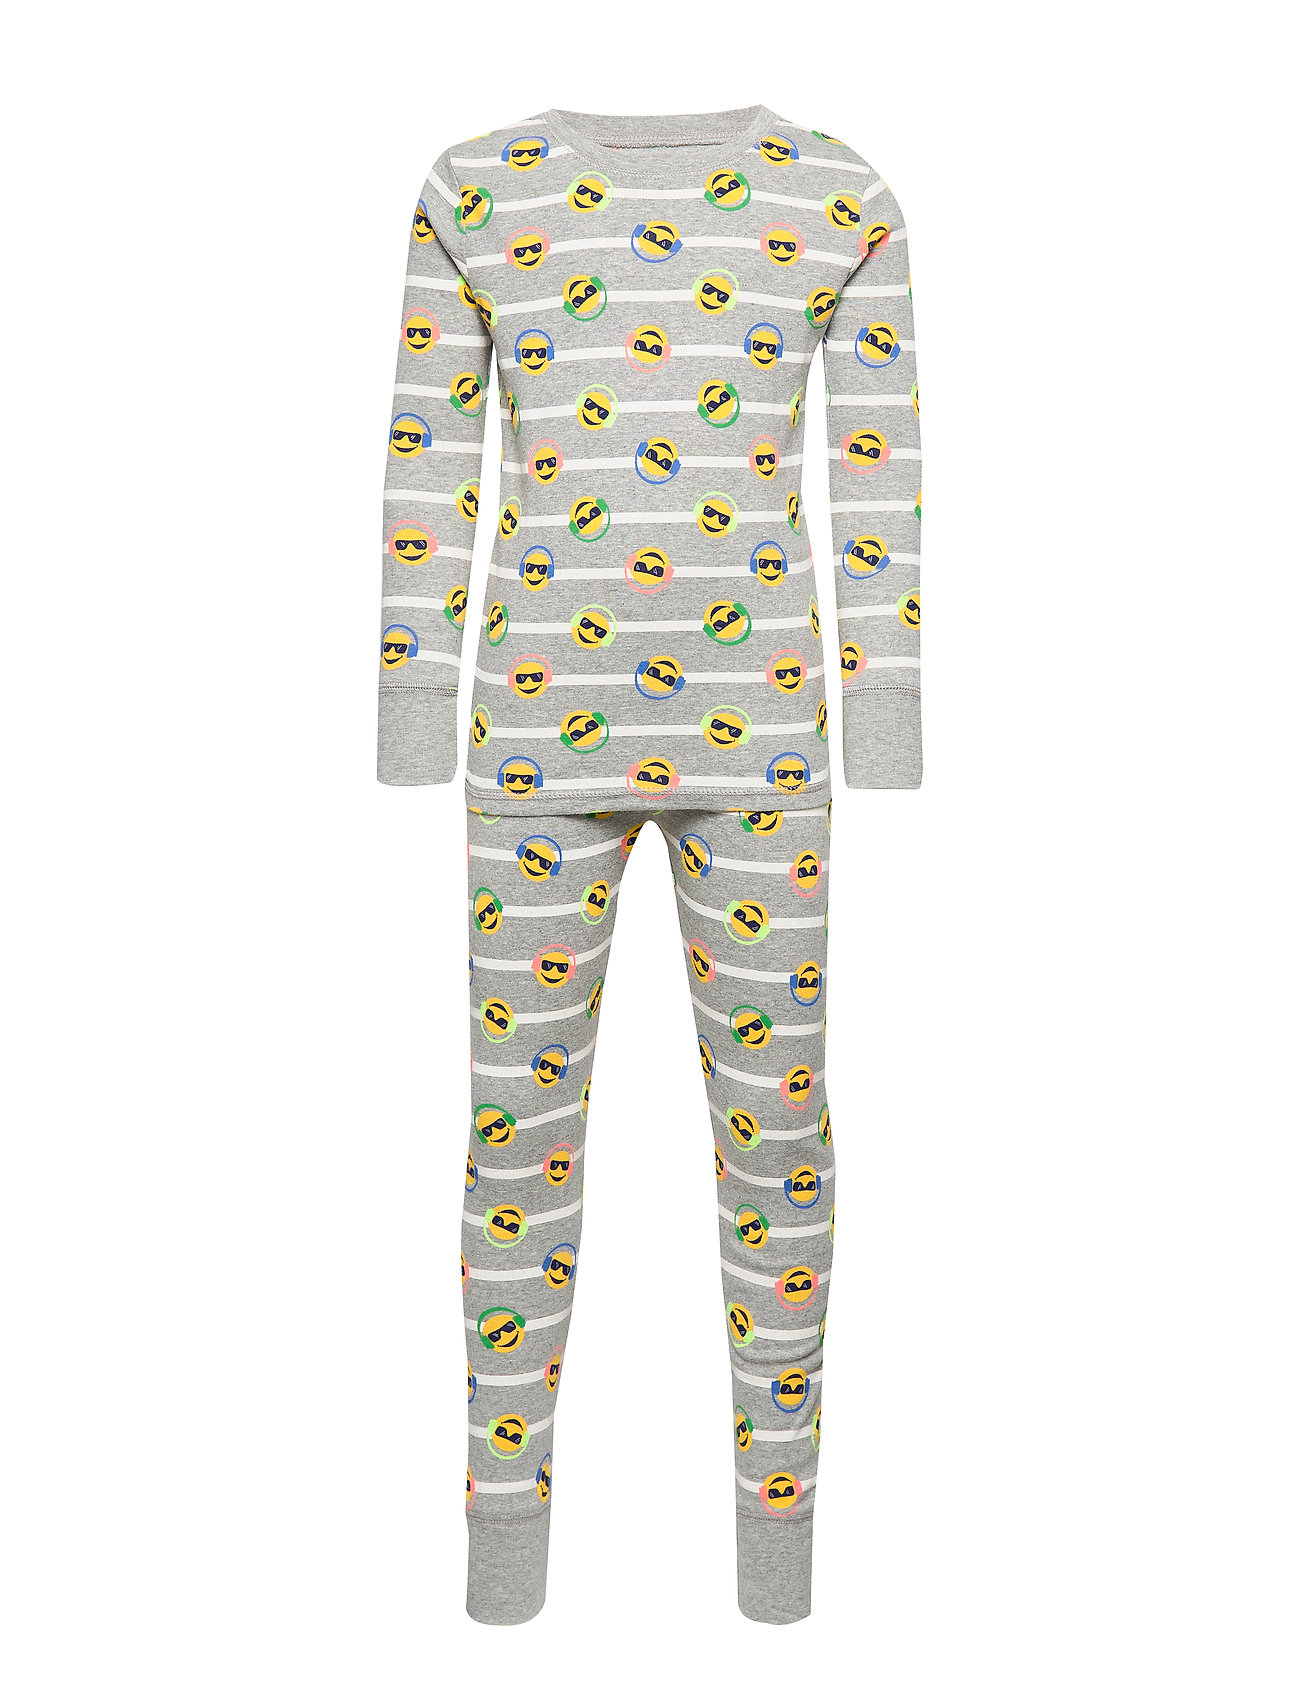 GAP Kids Emoji PJ Set - B10 GREY HEATHER